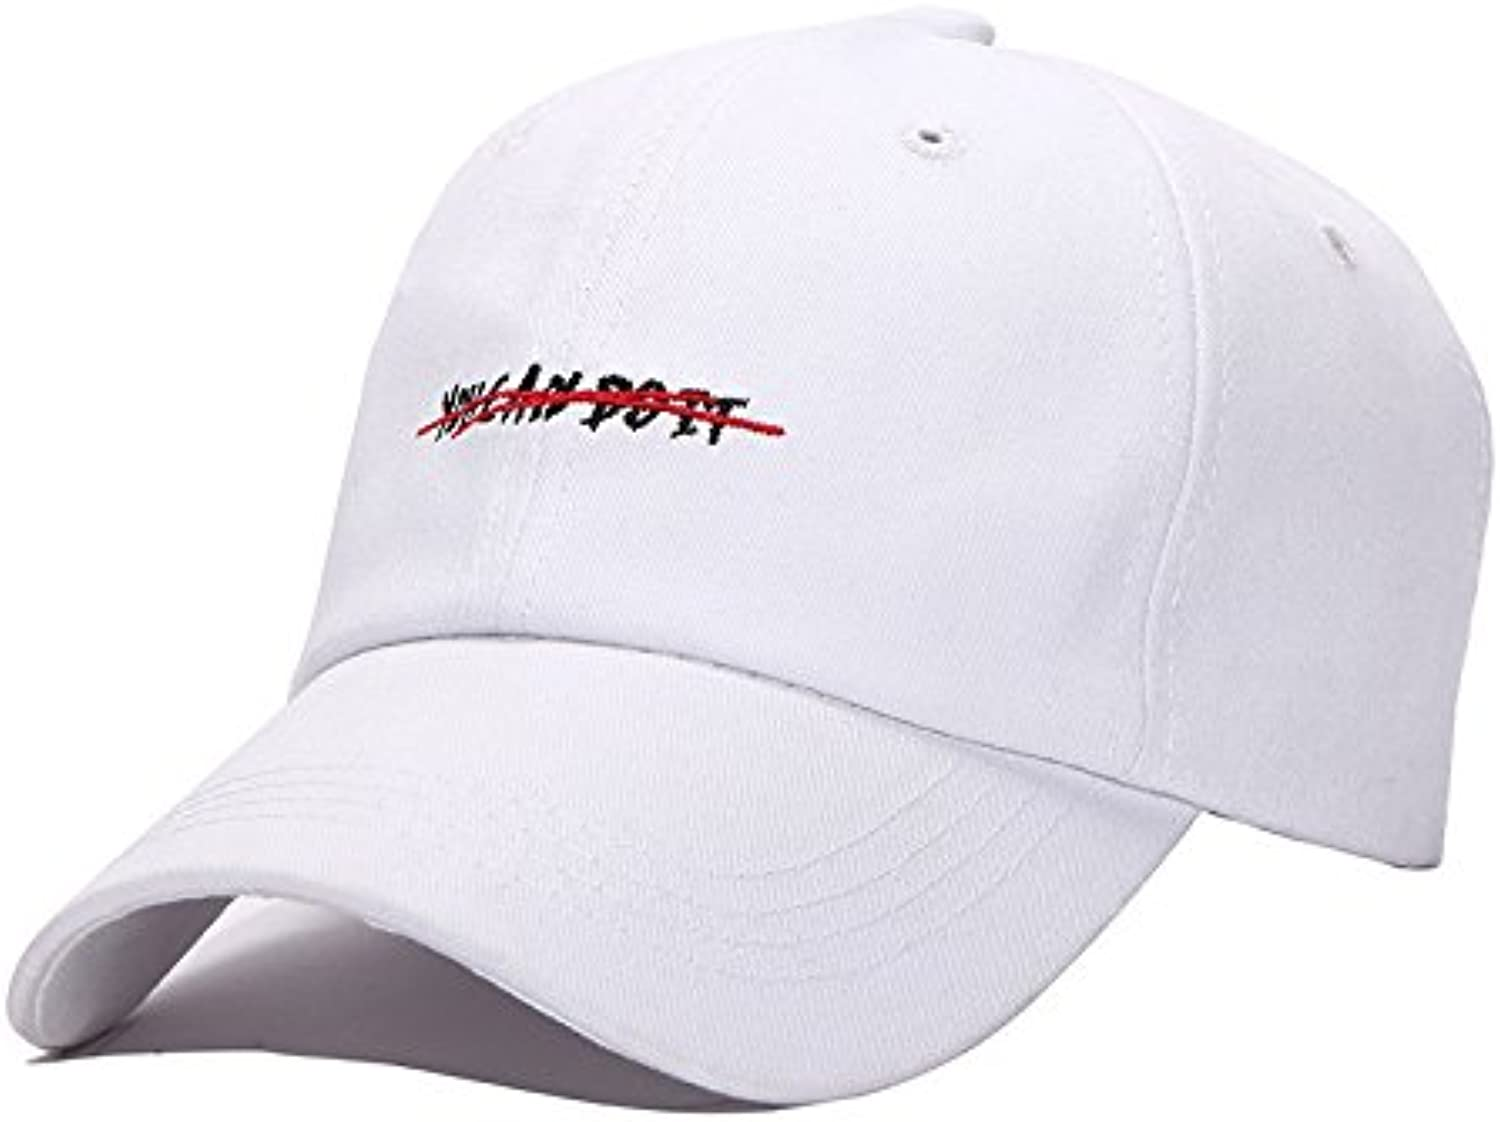 a5454f4d5aeab9 QETUOAD Embroidery Snapback Baseball Cap Casual Trucker Summer Adjustable  Hip Hop Caps Dad Hats for Women Men Outdoor Sun Cap Street Hat  nzvaeh3535-Sporting ...